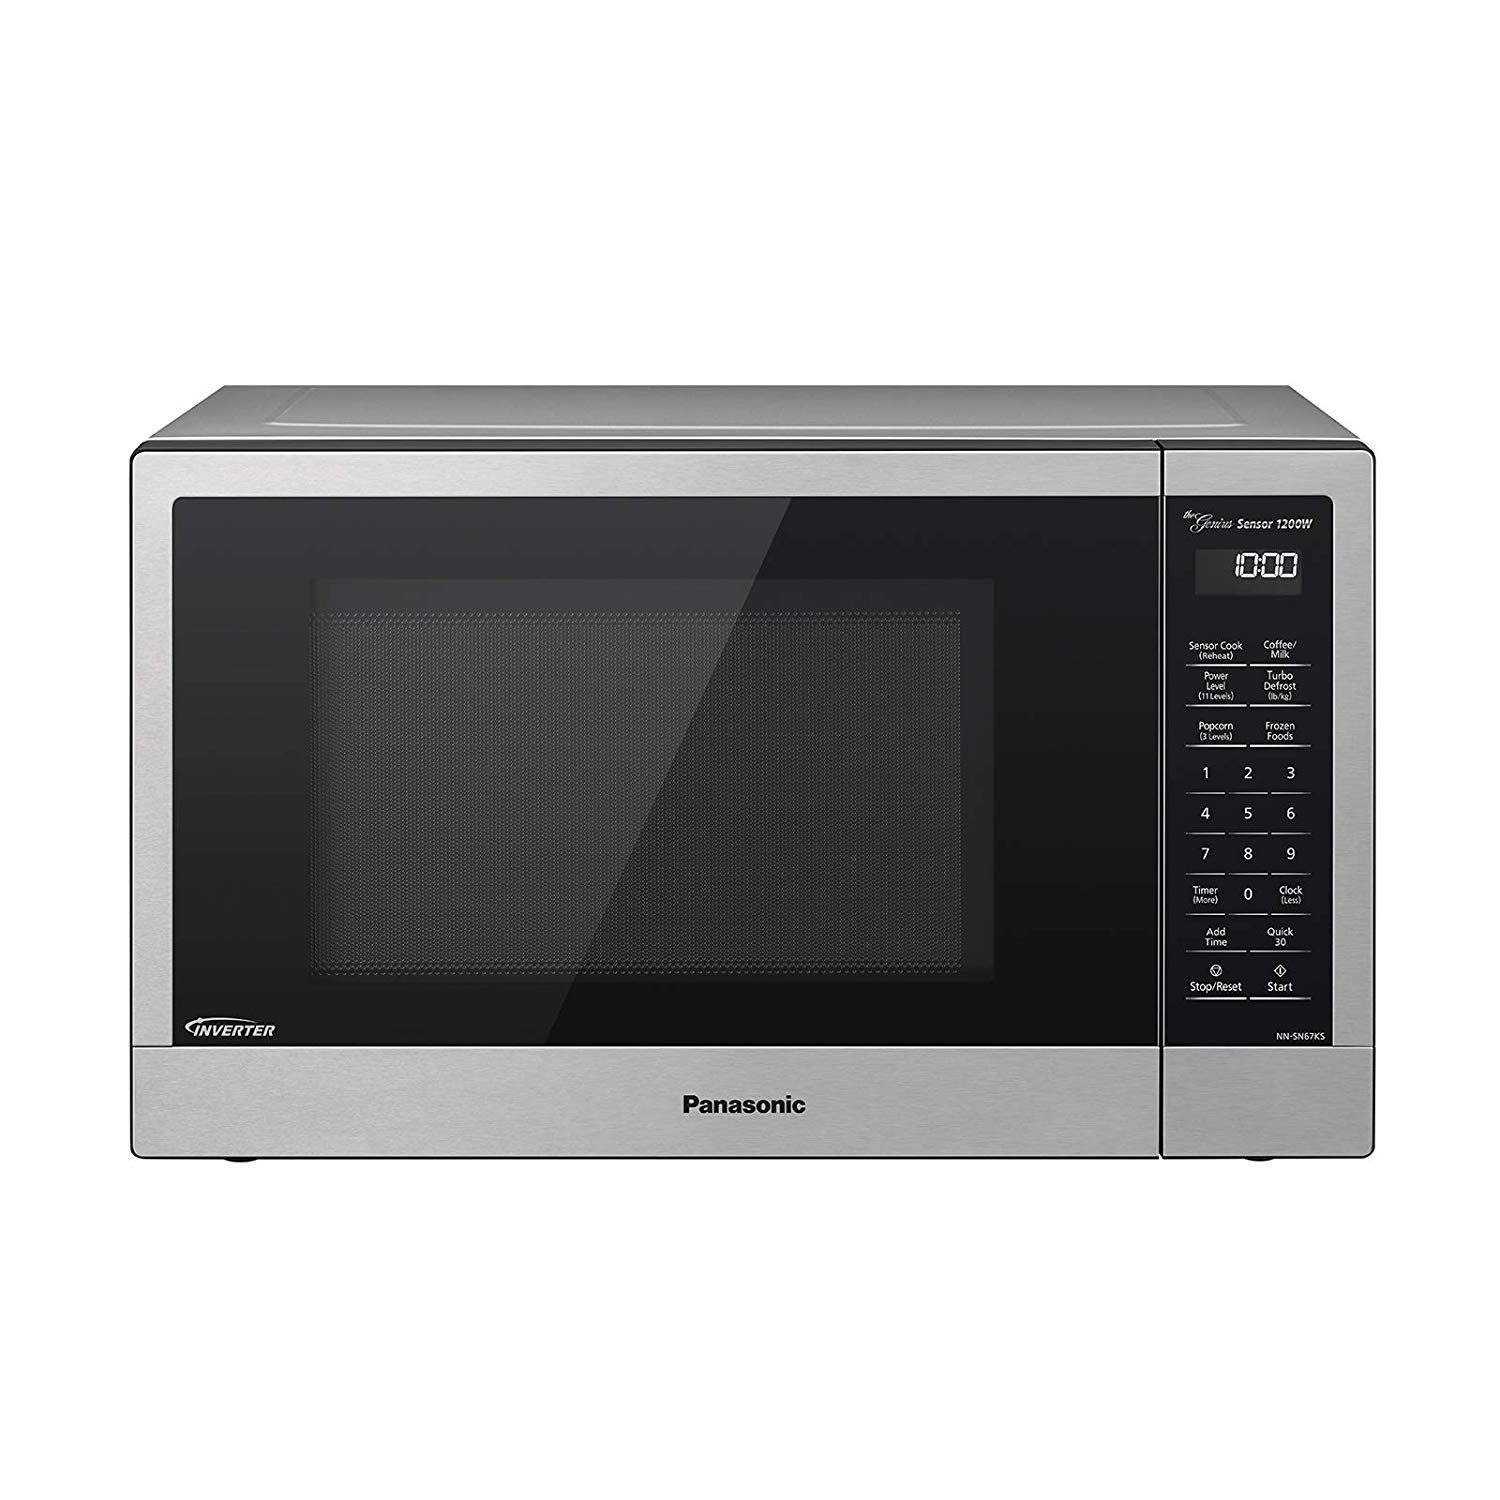 Panasonic Compact Microwave Oven with 1200 Watts of Cooking Power